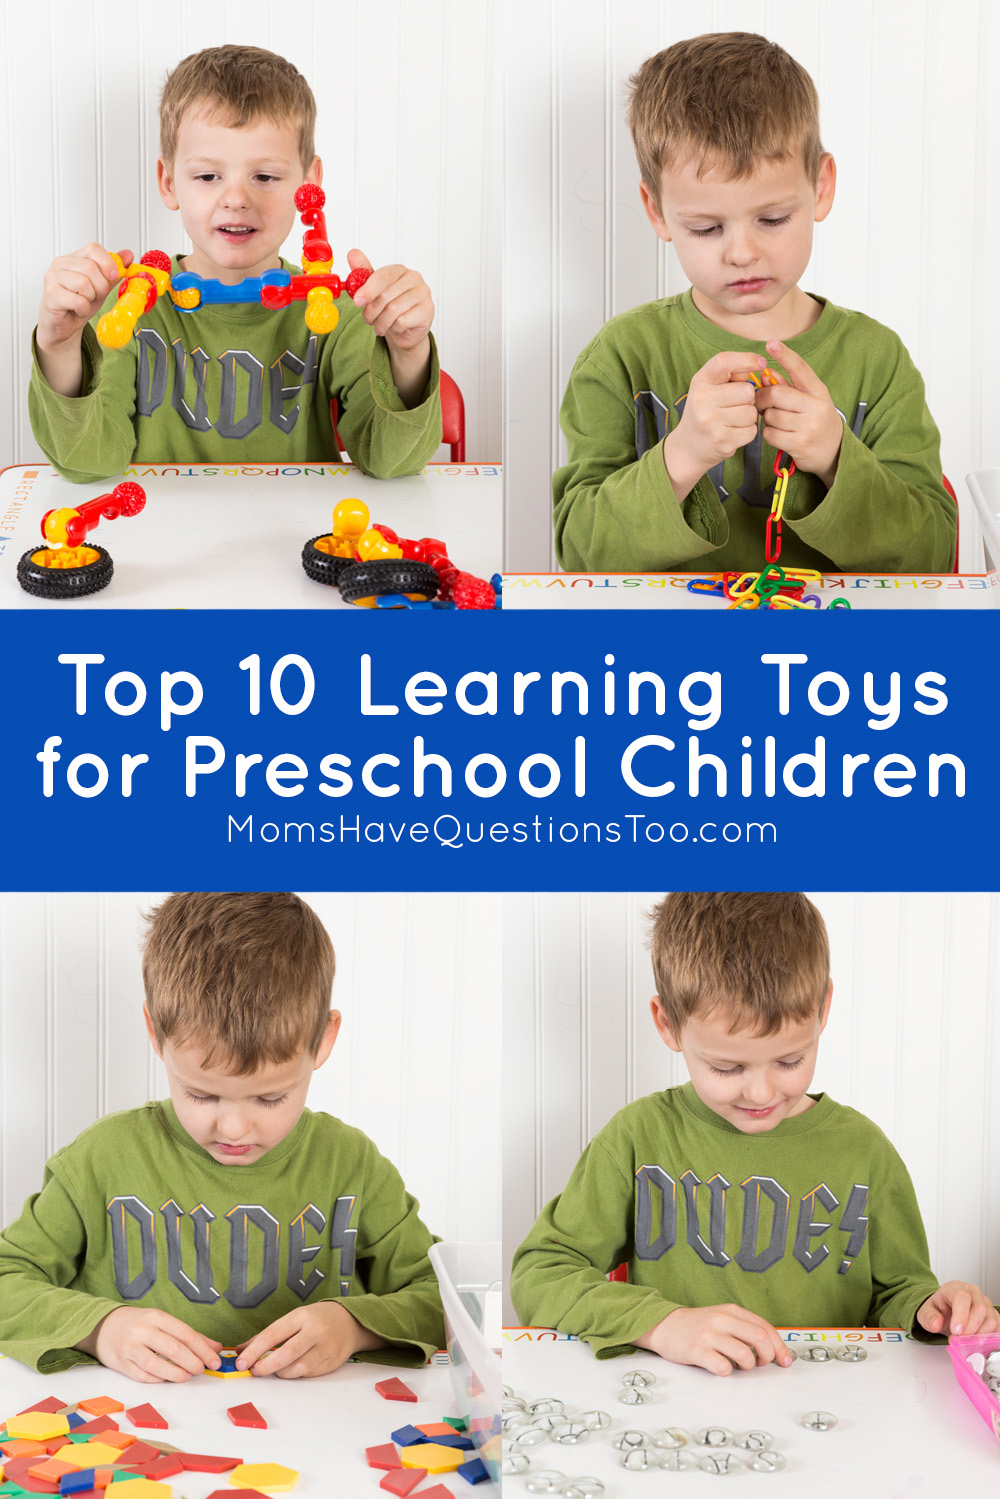 Top Learning Toys For Preschoolers : Top learning toys for preschoolers